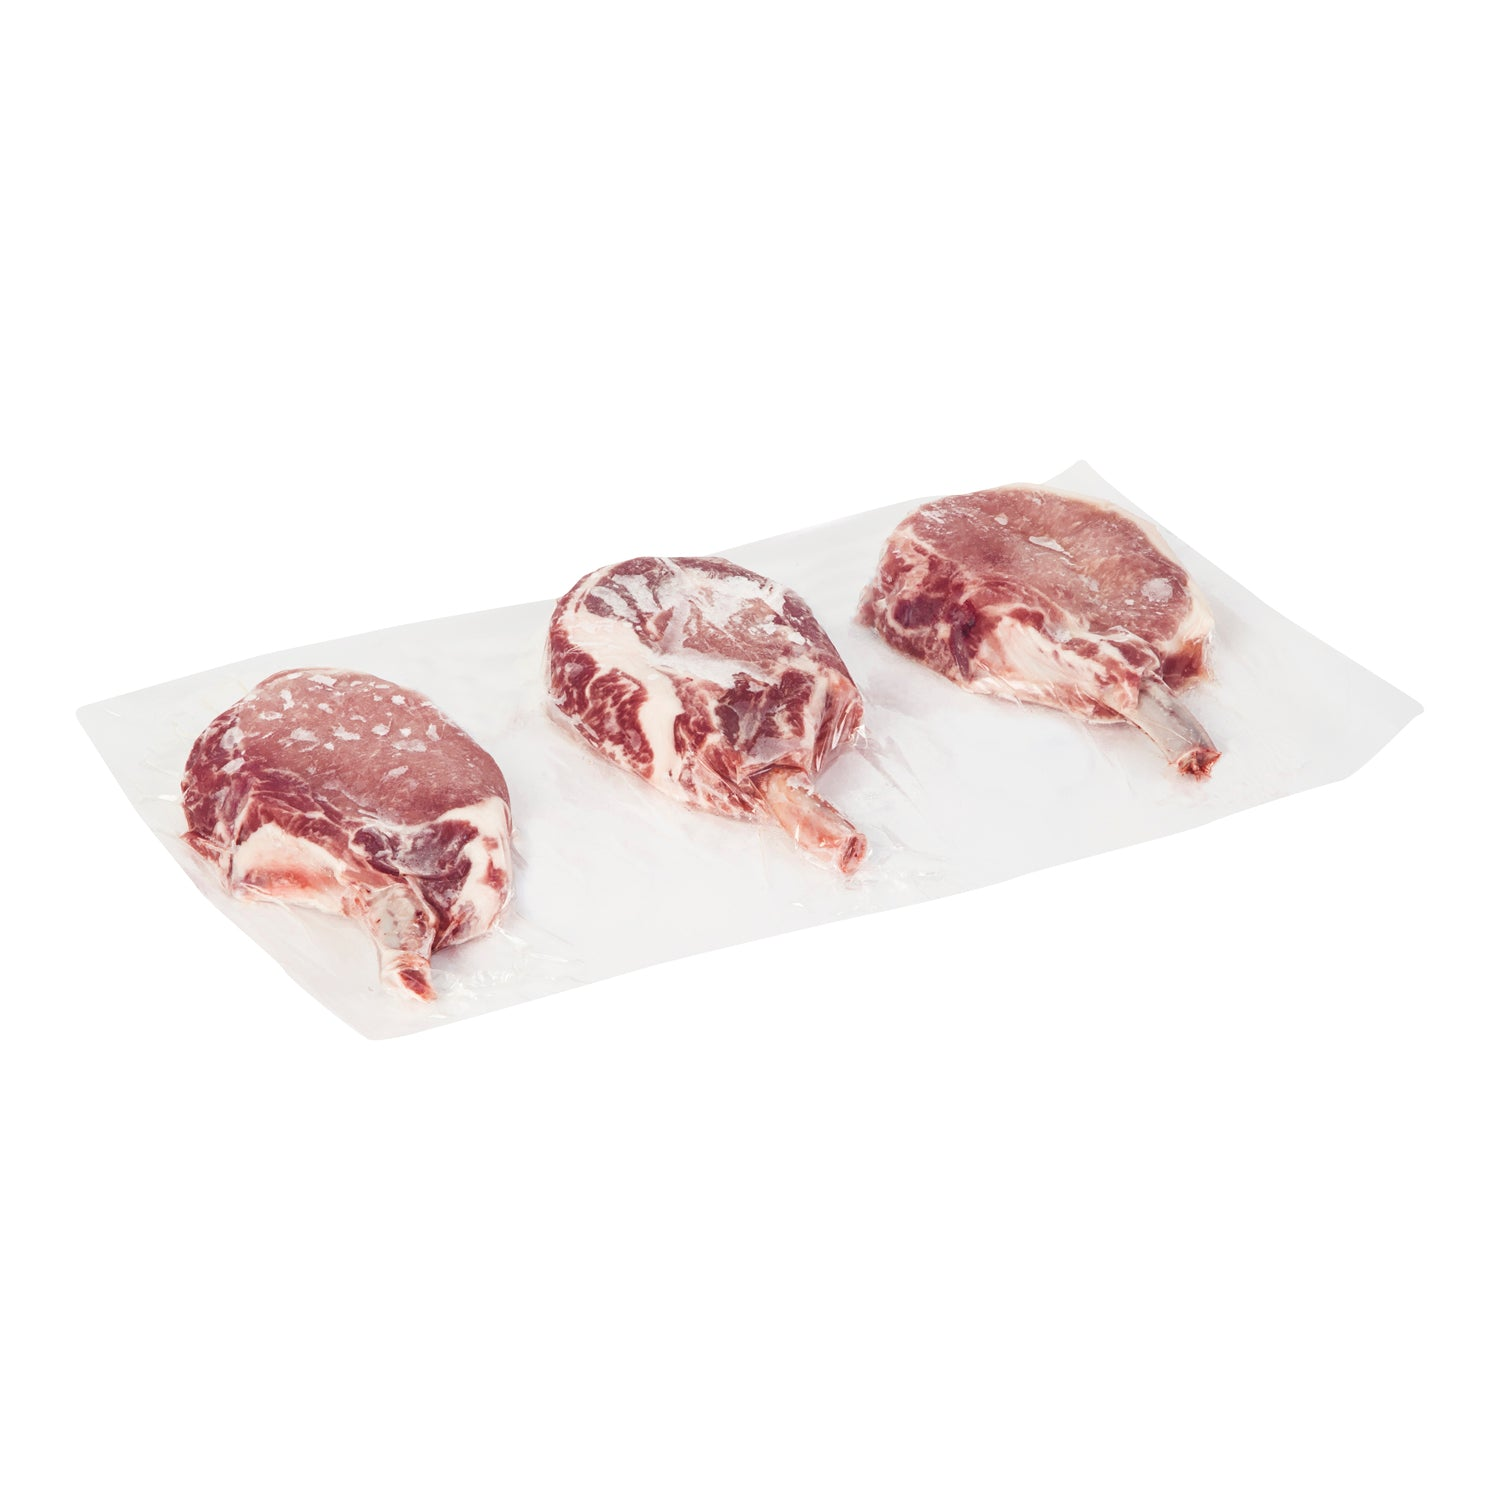 Sysco Butcher Block Frozen Frenched Bone-in Pork Chops 10 oz - 16 Pack [$6.00/each]